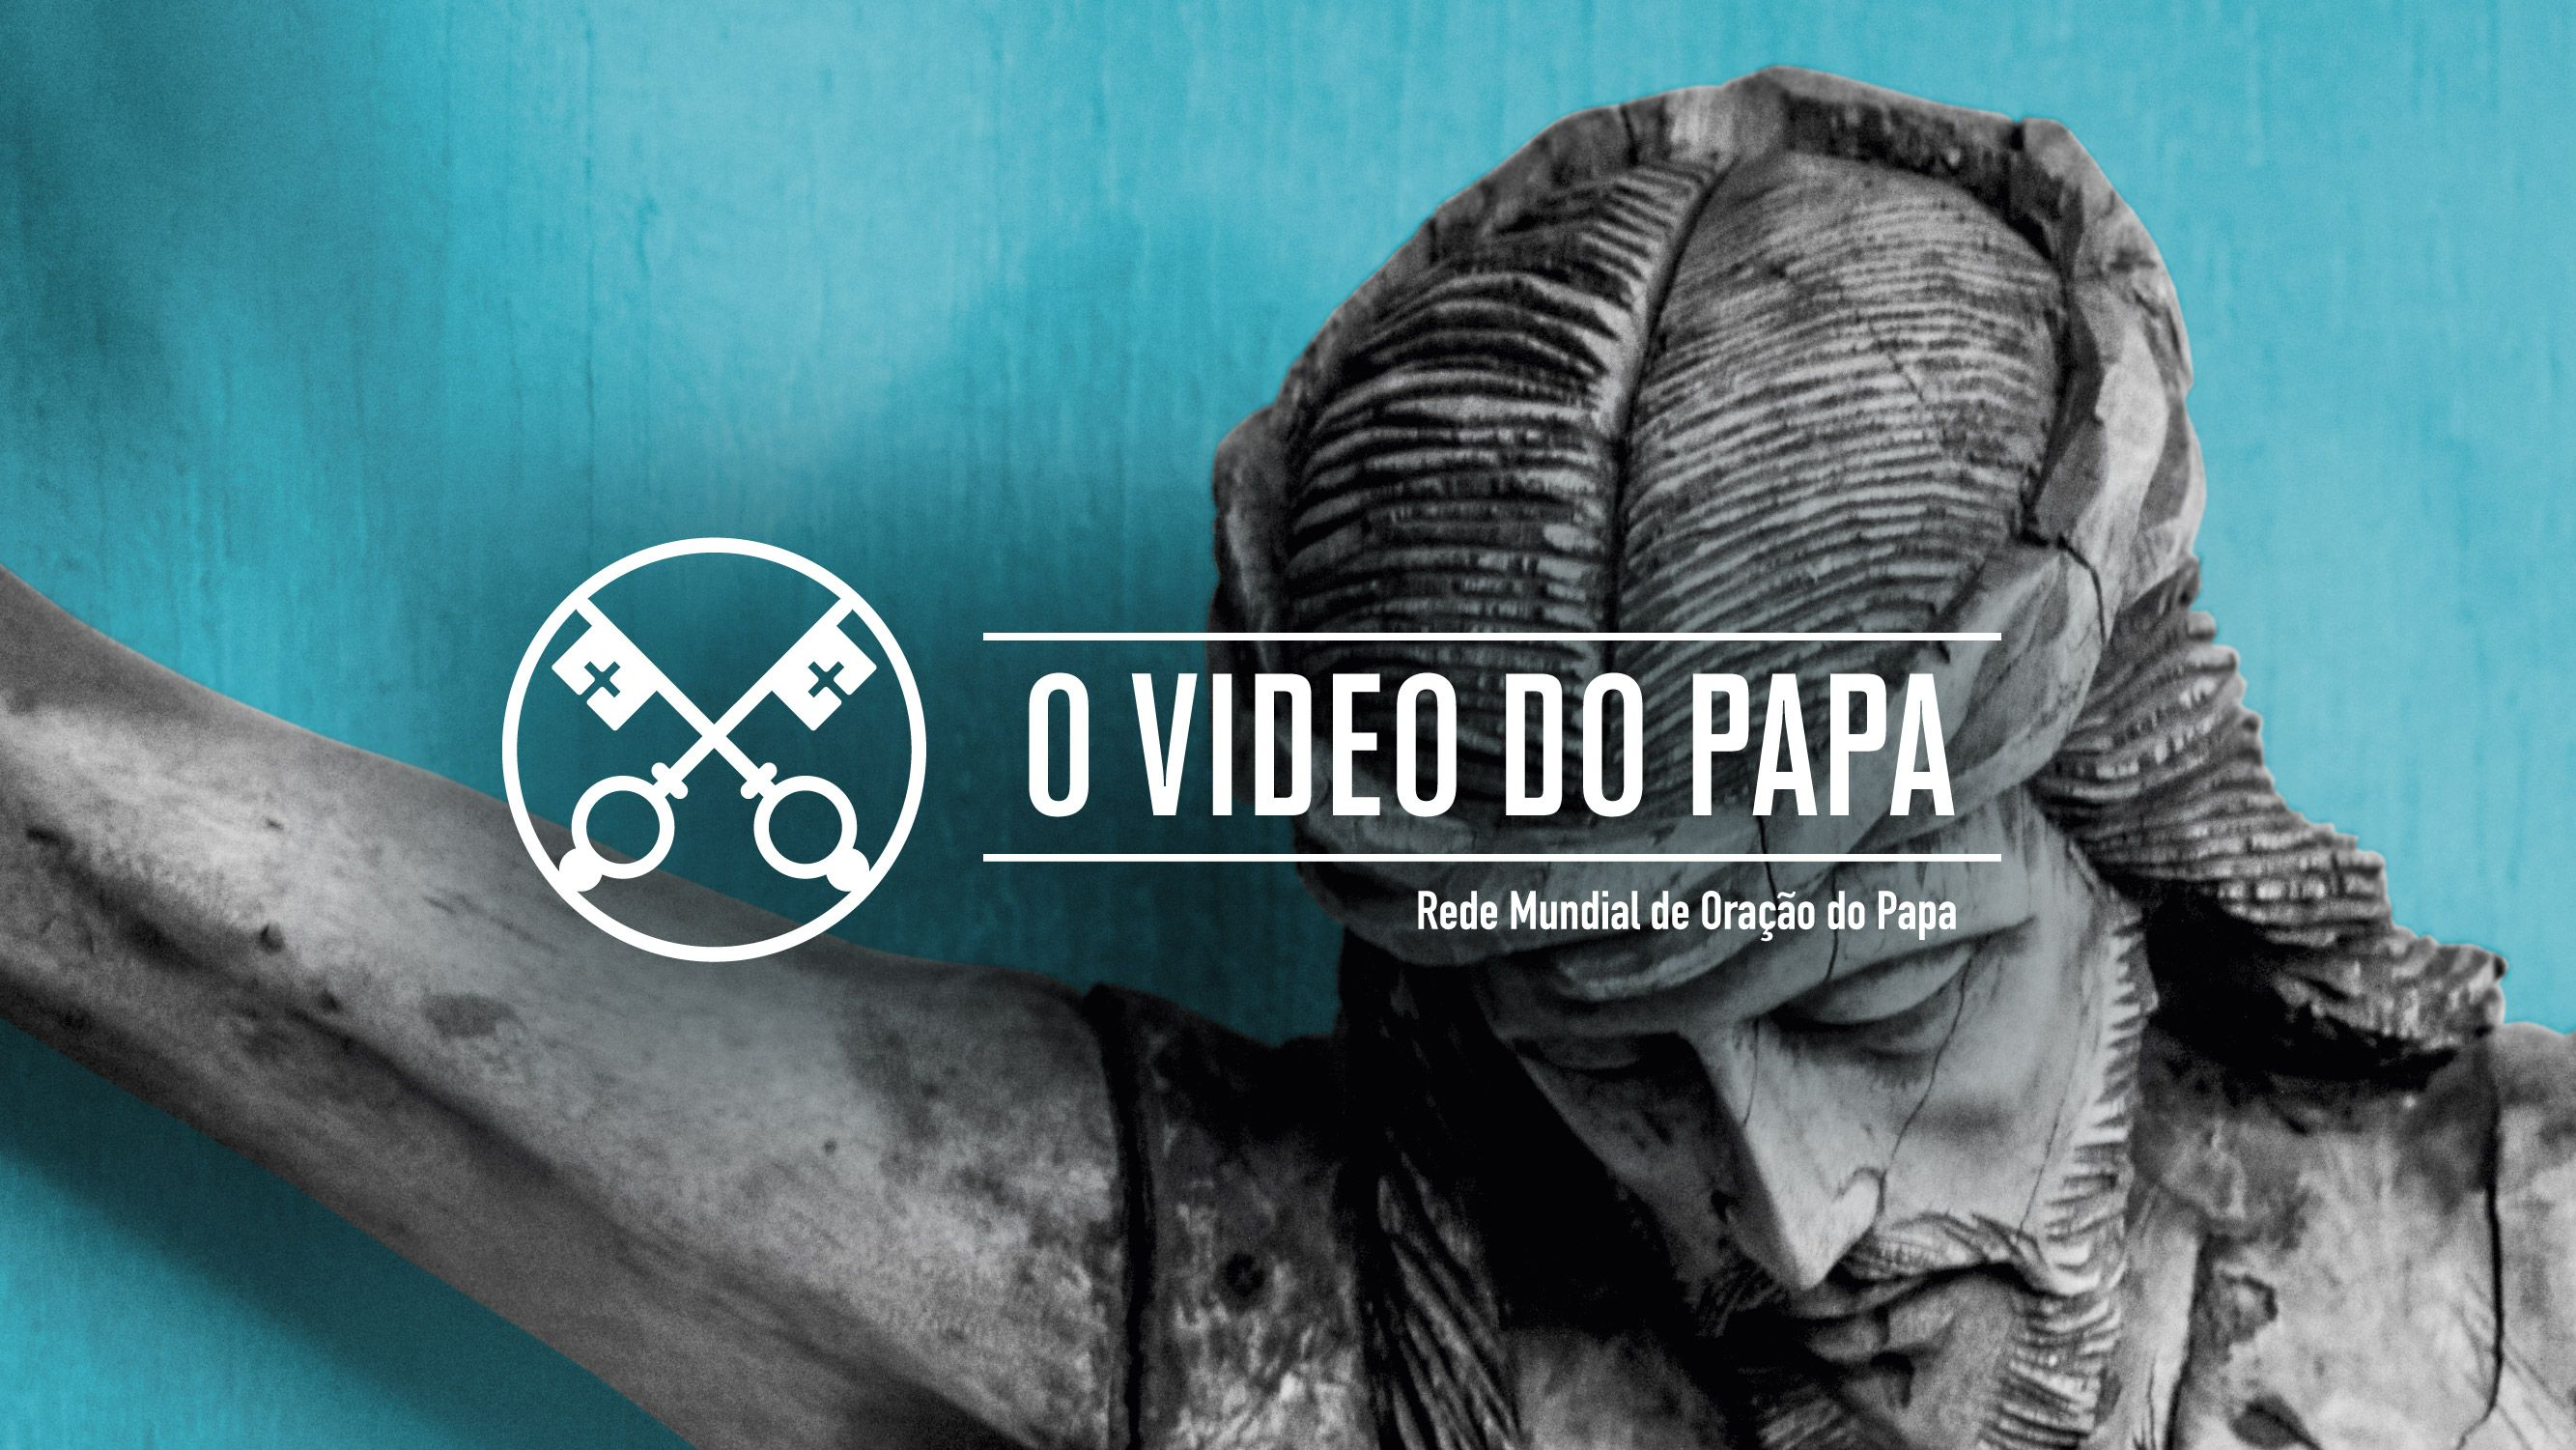 Official-Image-TPV-6-2020-PT-O-Video-do-Papa-Compaixão-pelo-mundo